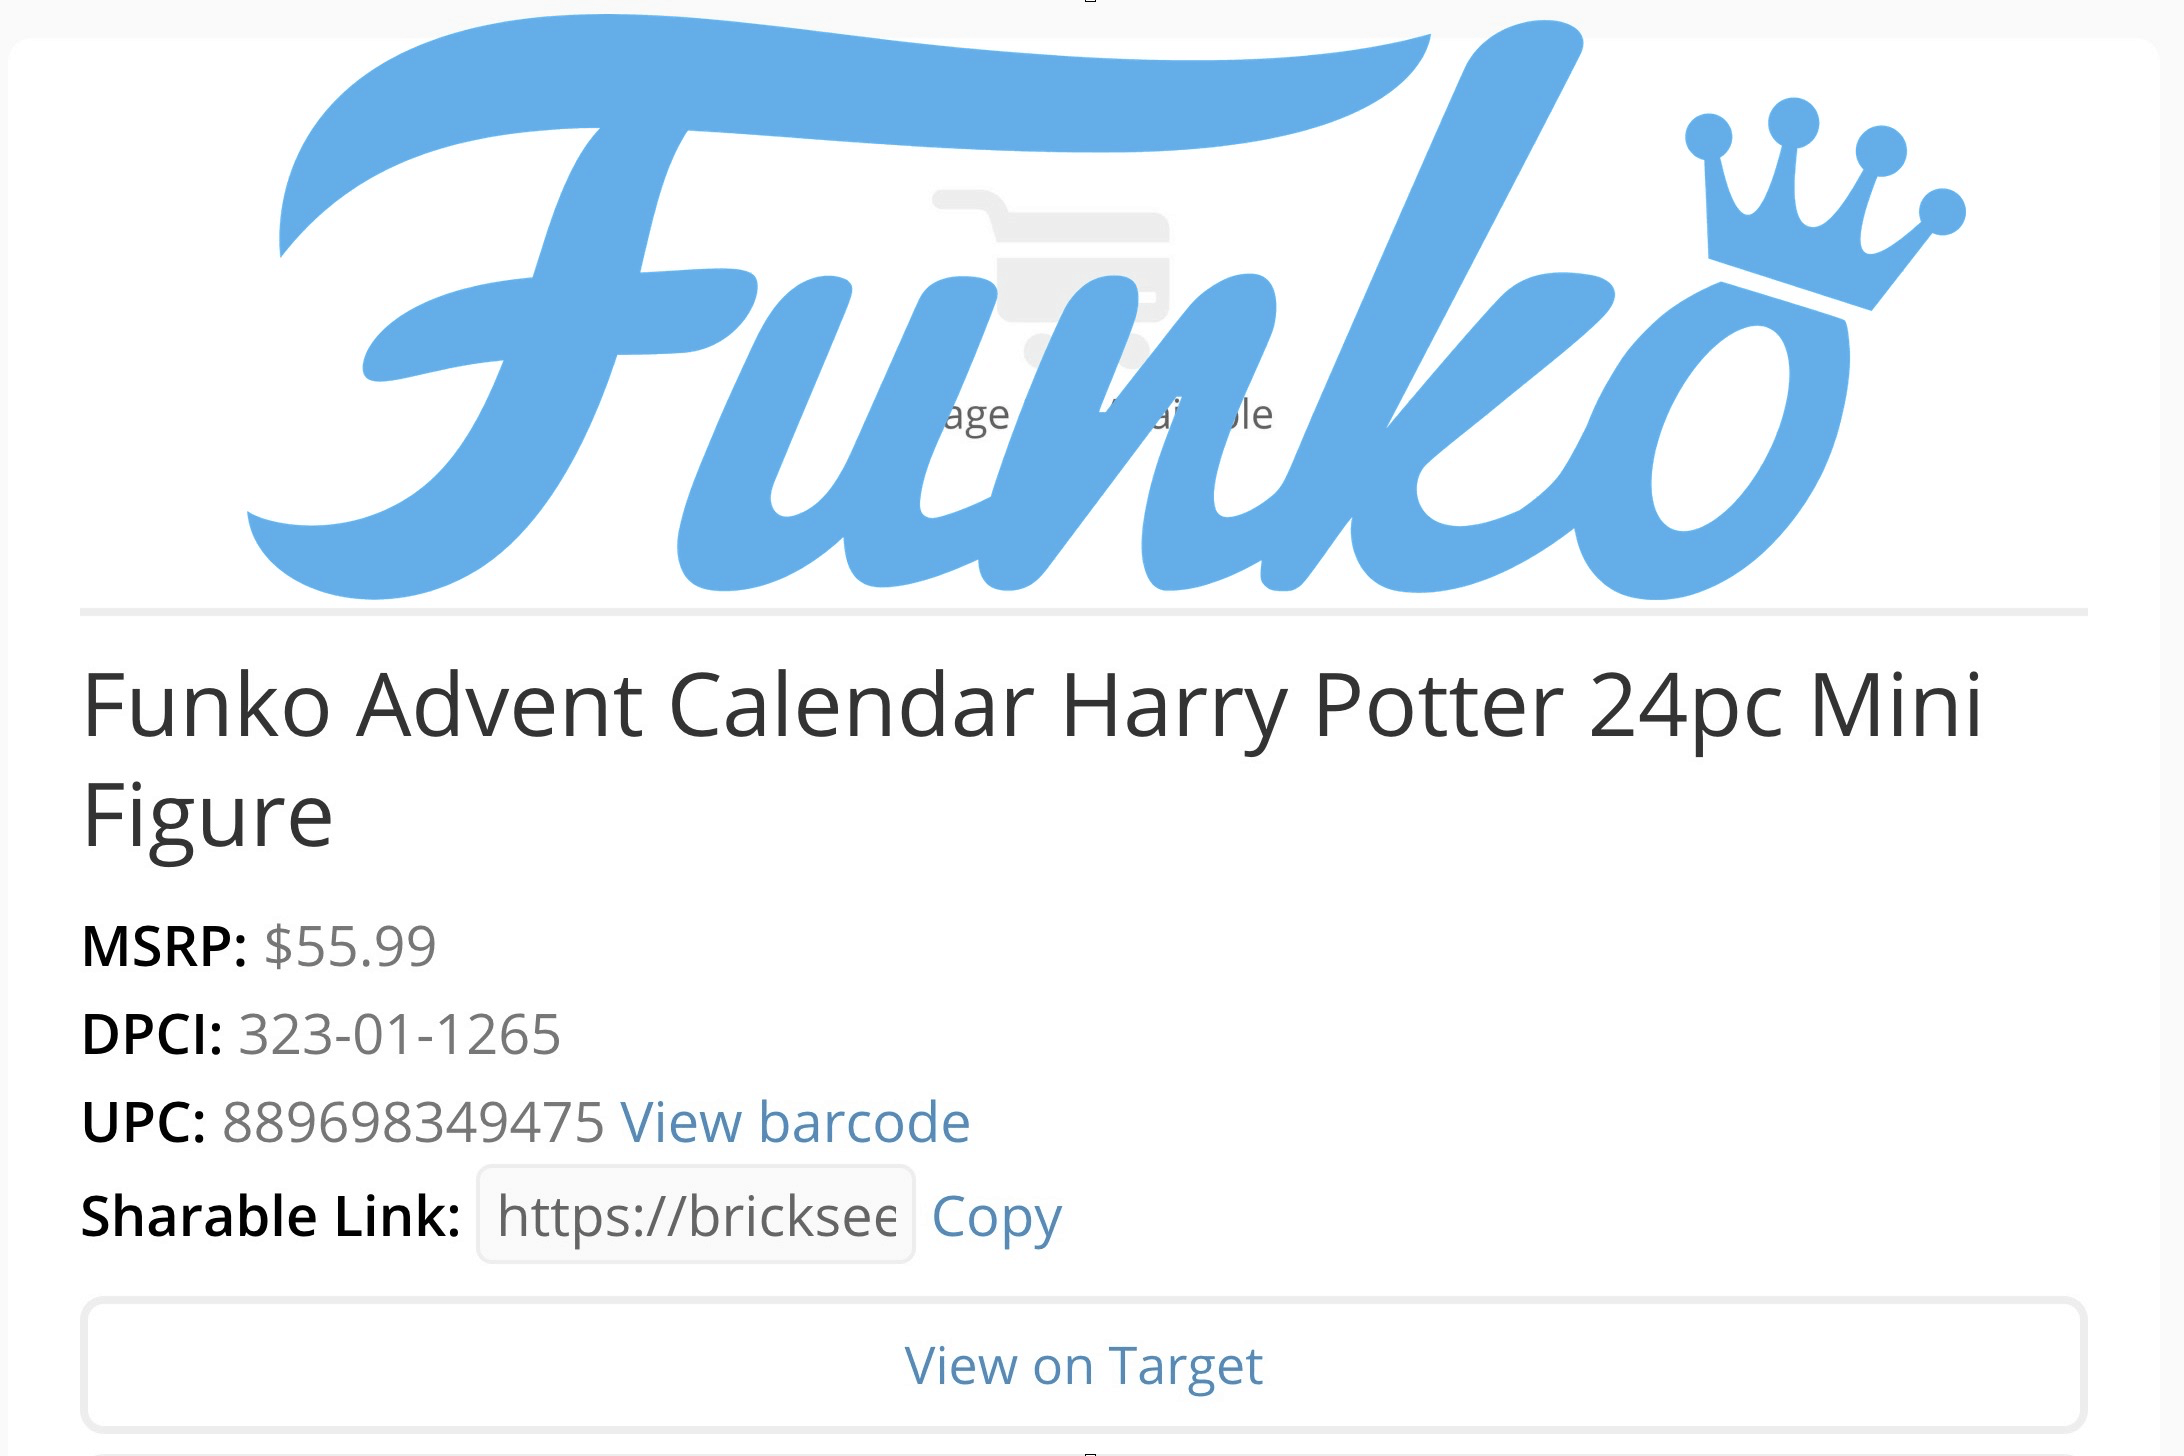 Funko Harry Potter Advent Calendar Coming Soon!